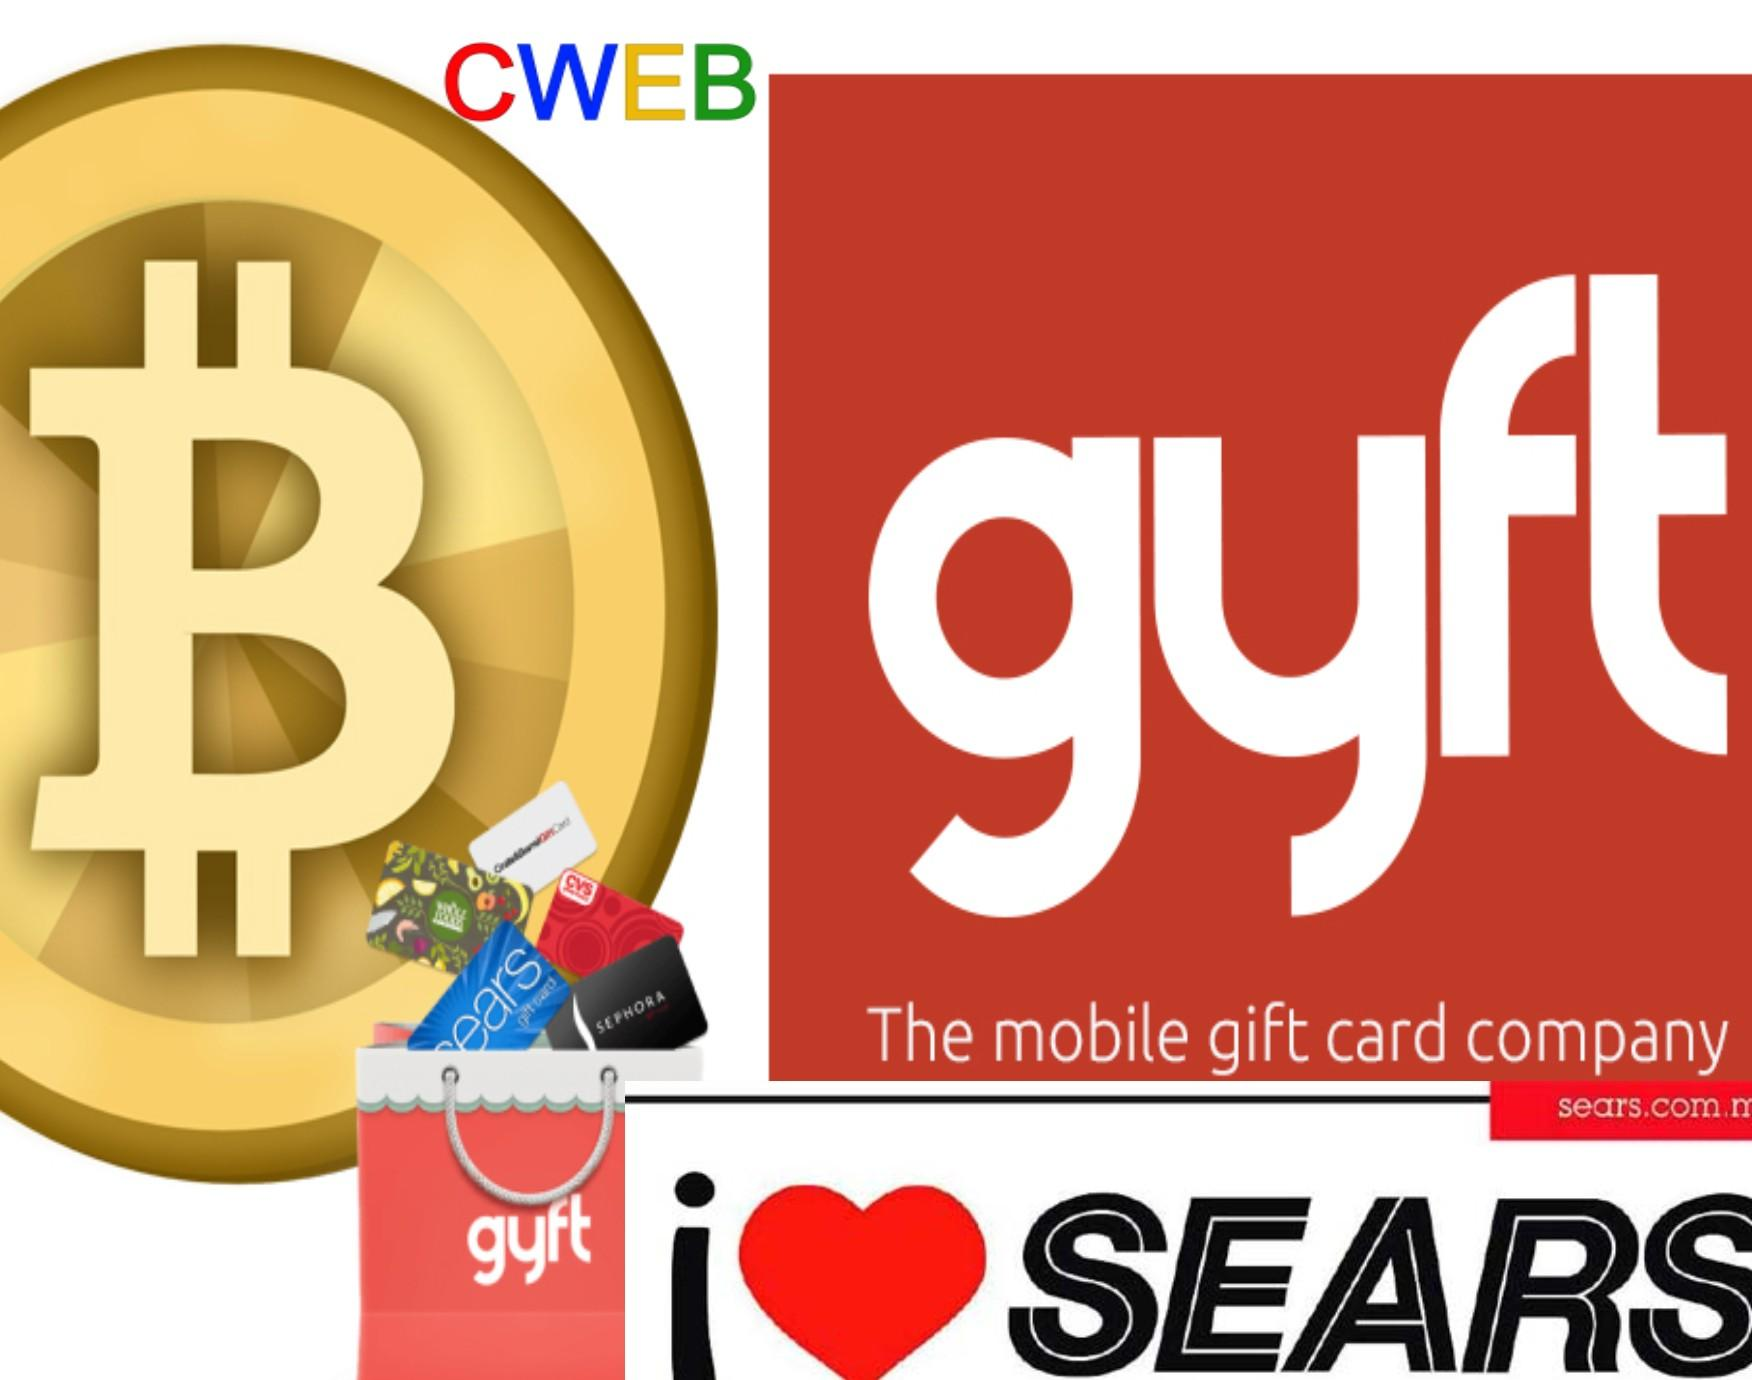 A digital gift card platform that enables you to buy, send gift cards from hundreds of top retailers such as Sears, Amazon, iTunes, Starbucks, Target, ...